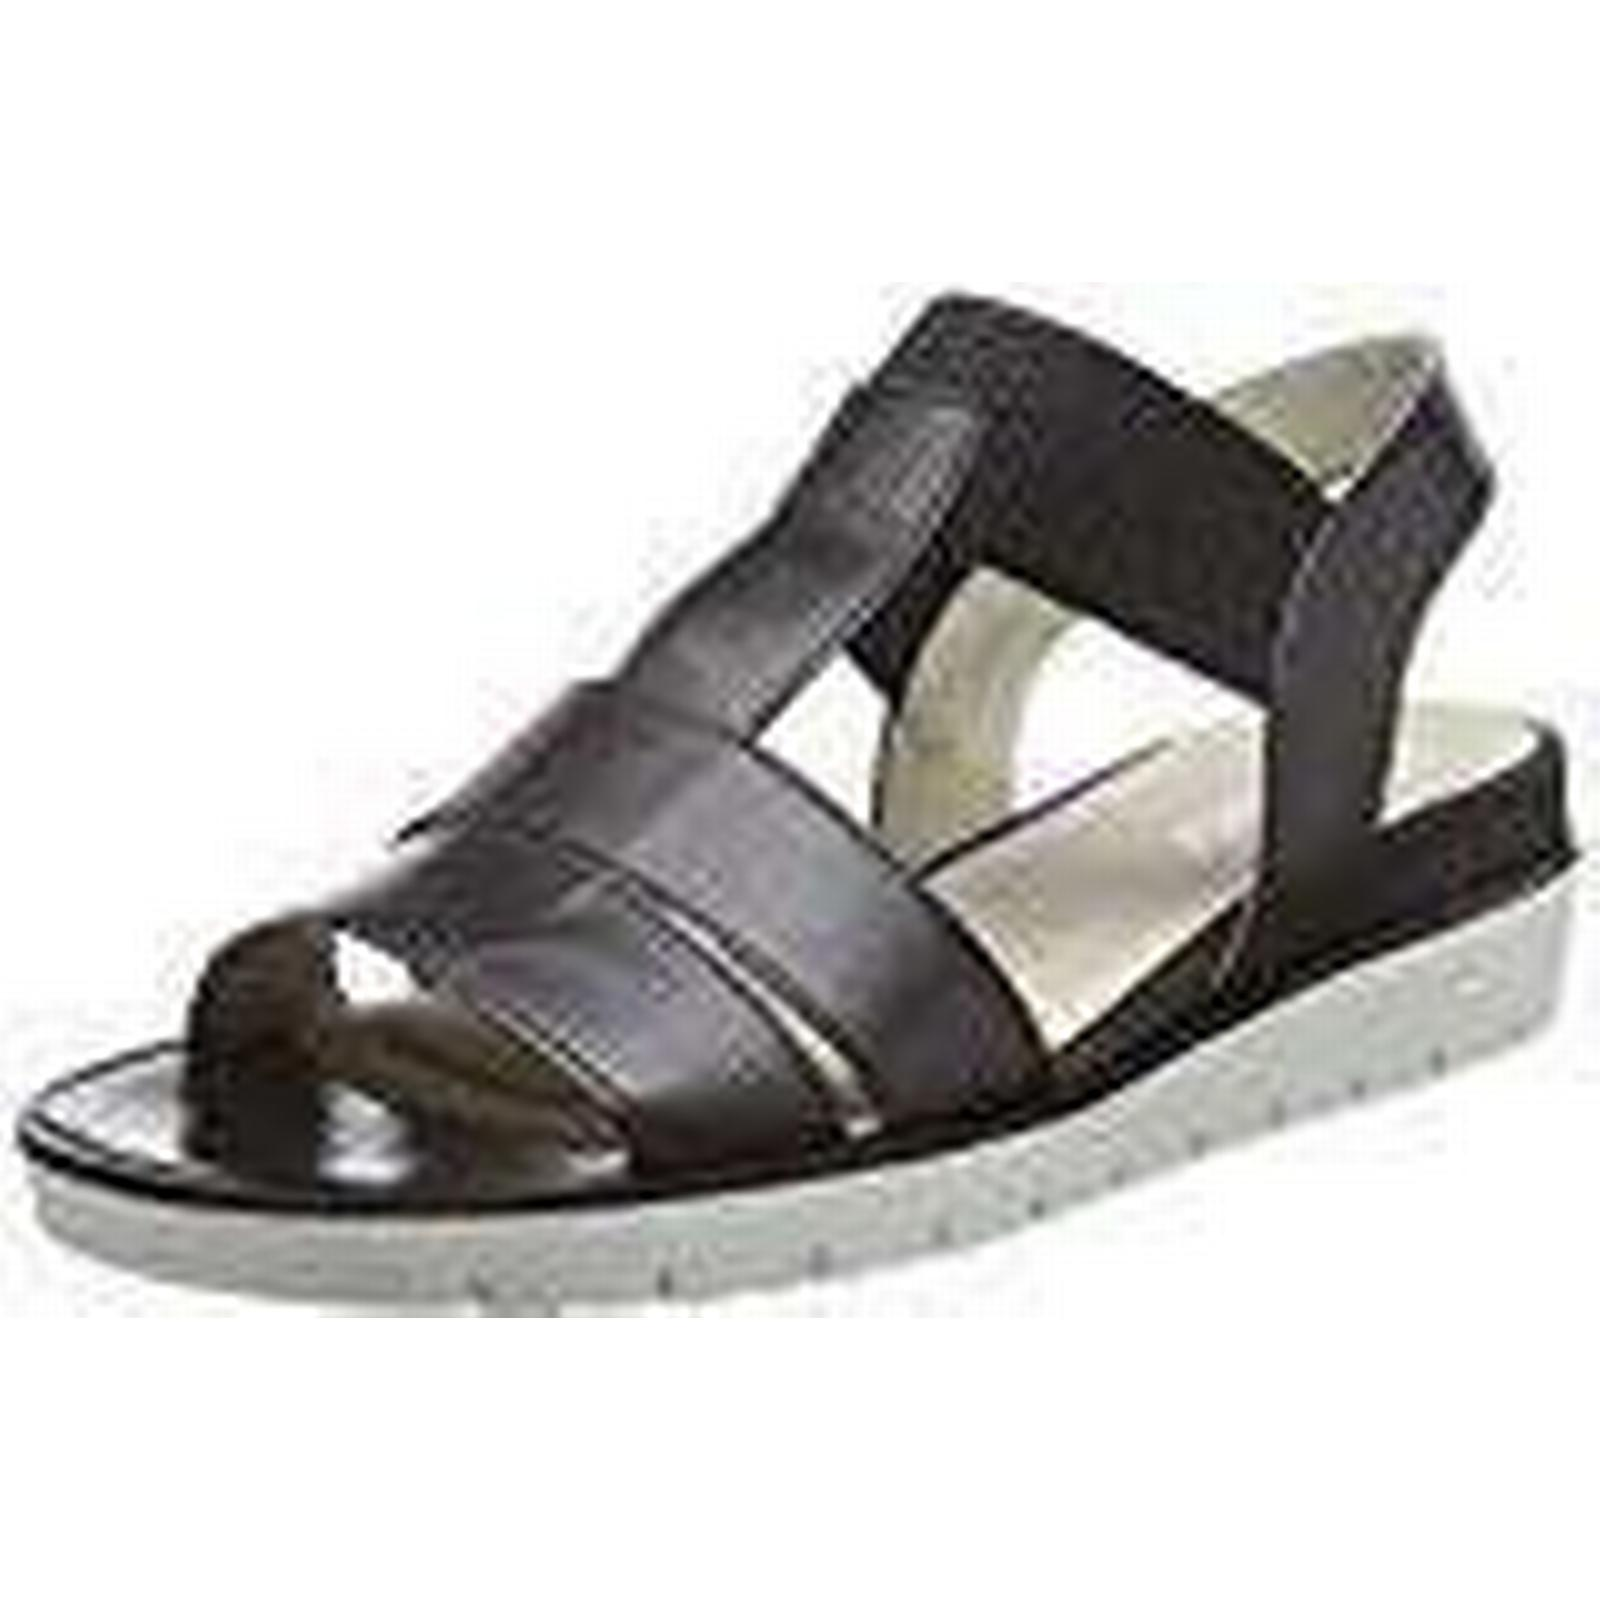 Gabor Shoes Women''s Basic Ankle 3.5 Strap Sandals, Black (Schwarz), 3.5 Ankle UK 02b9c6